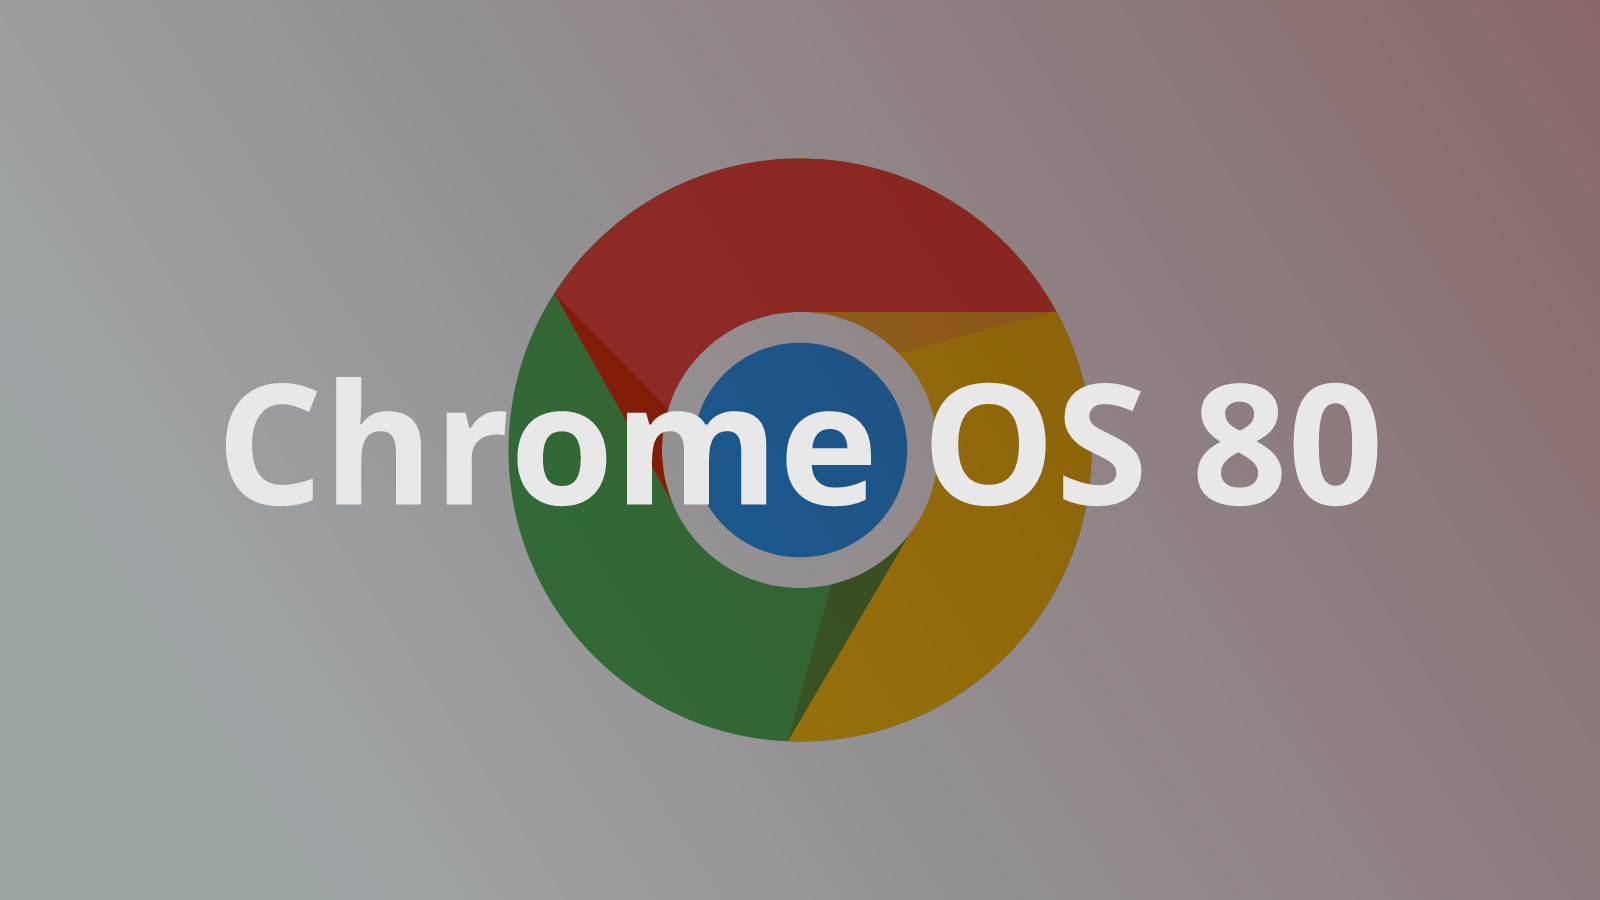 Latest Chrome OS 80 update lends new tools to Family Link Accounts